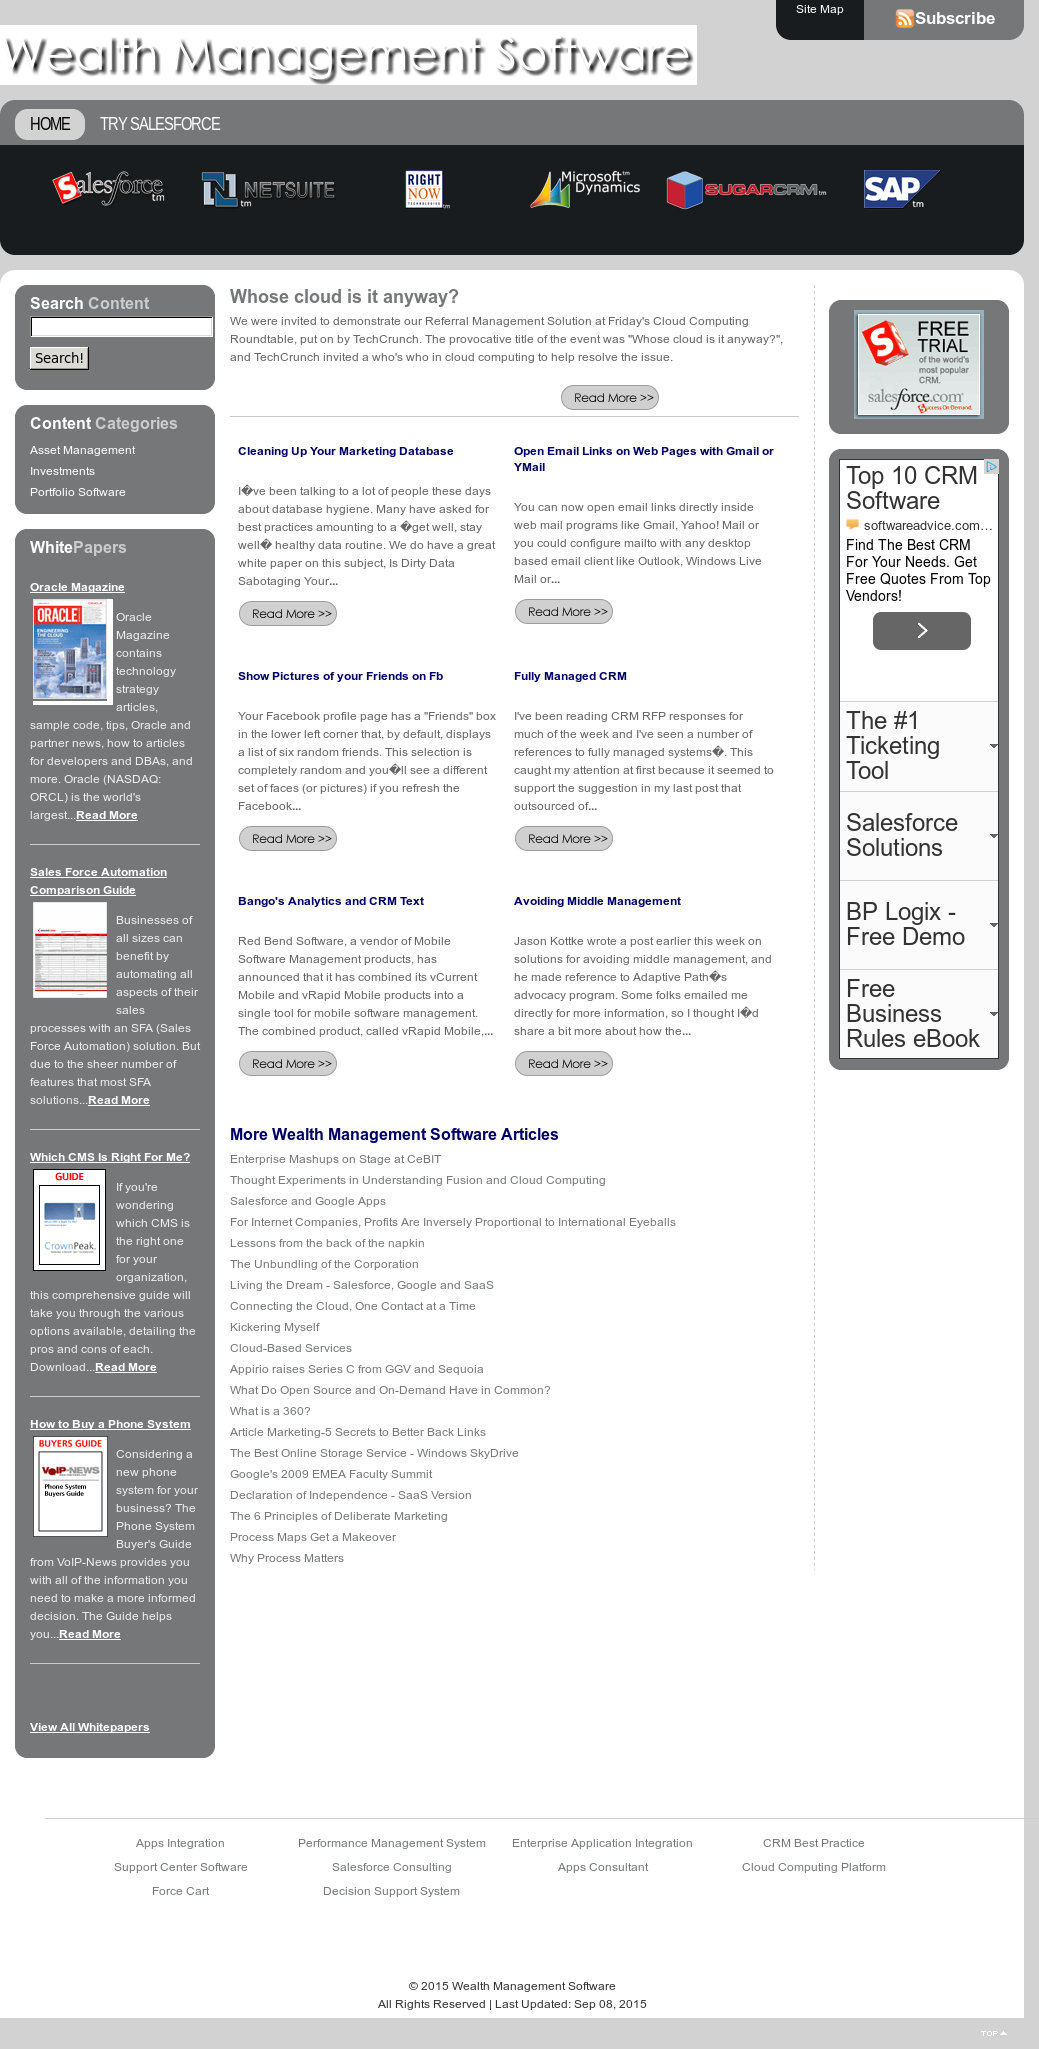 Wealth Management Software Competitors, Revenue and